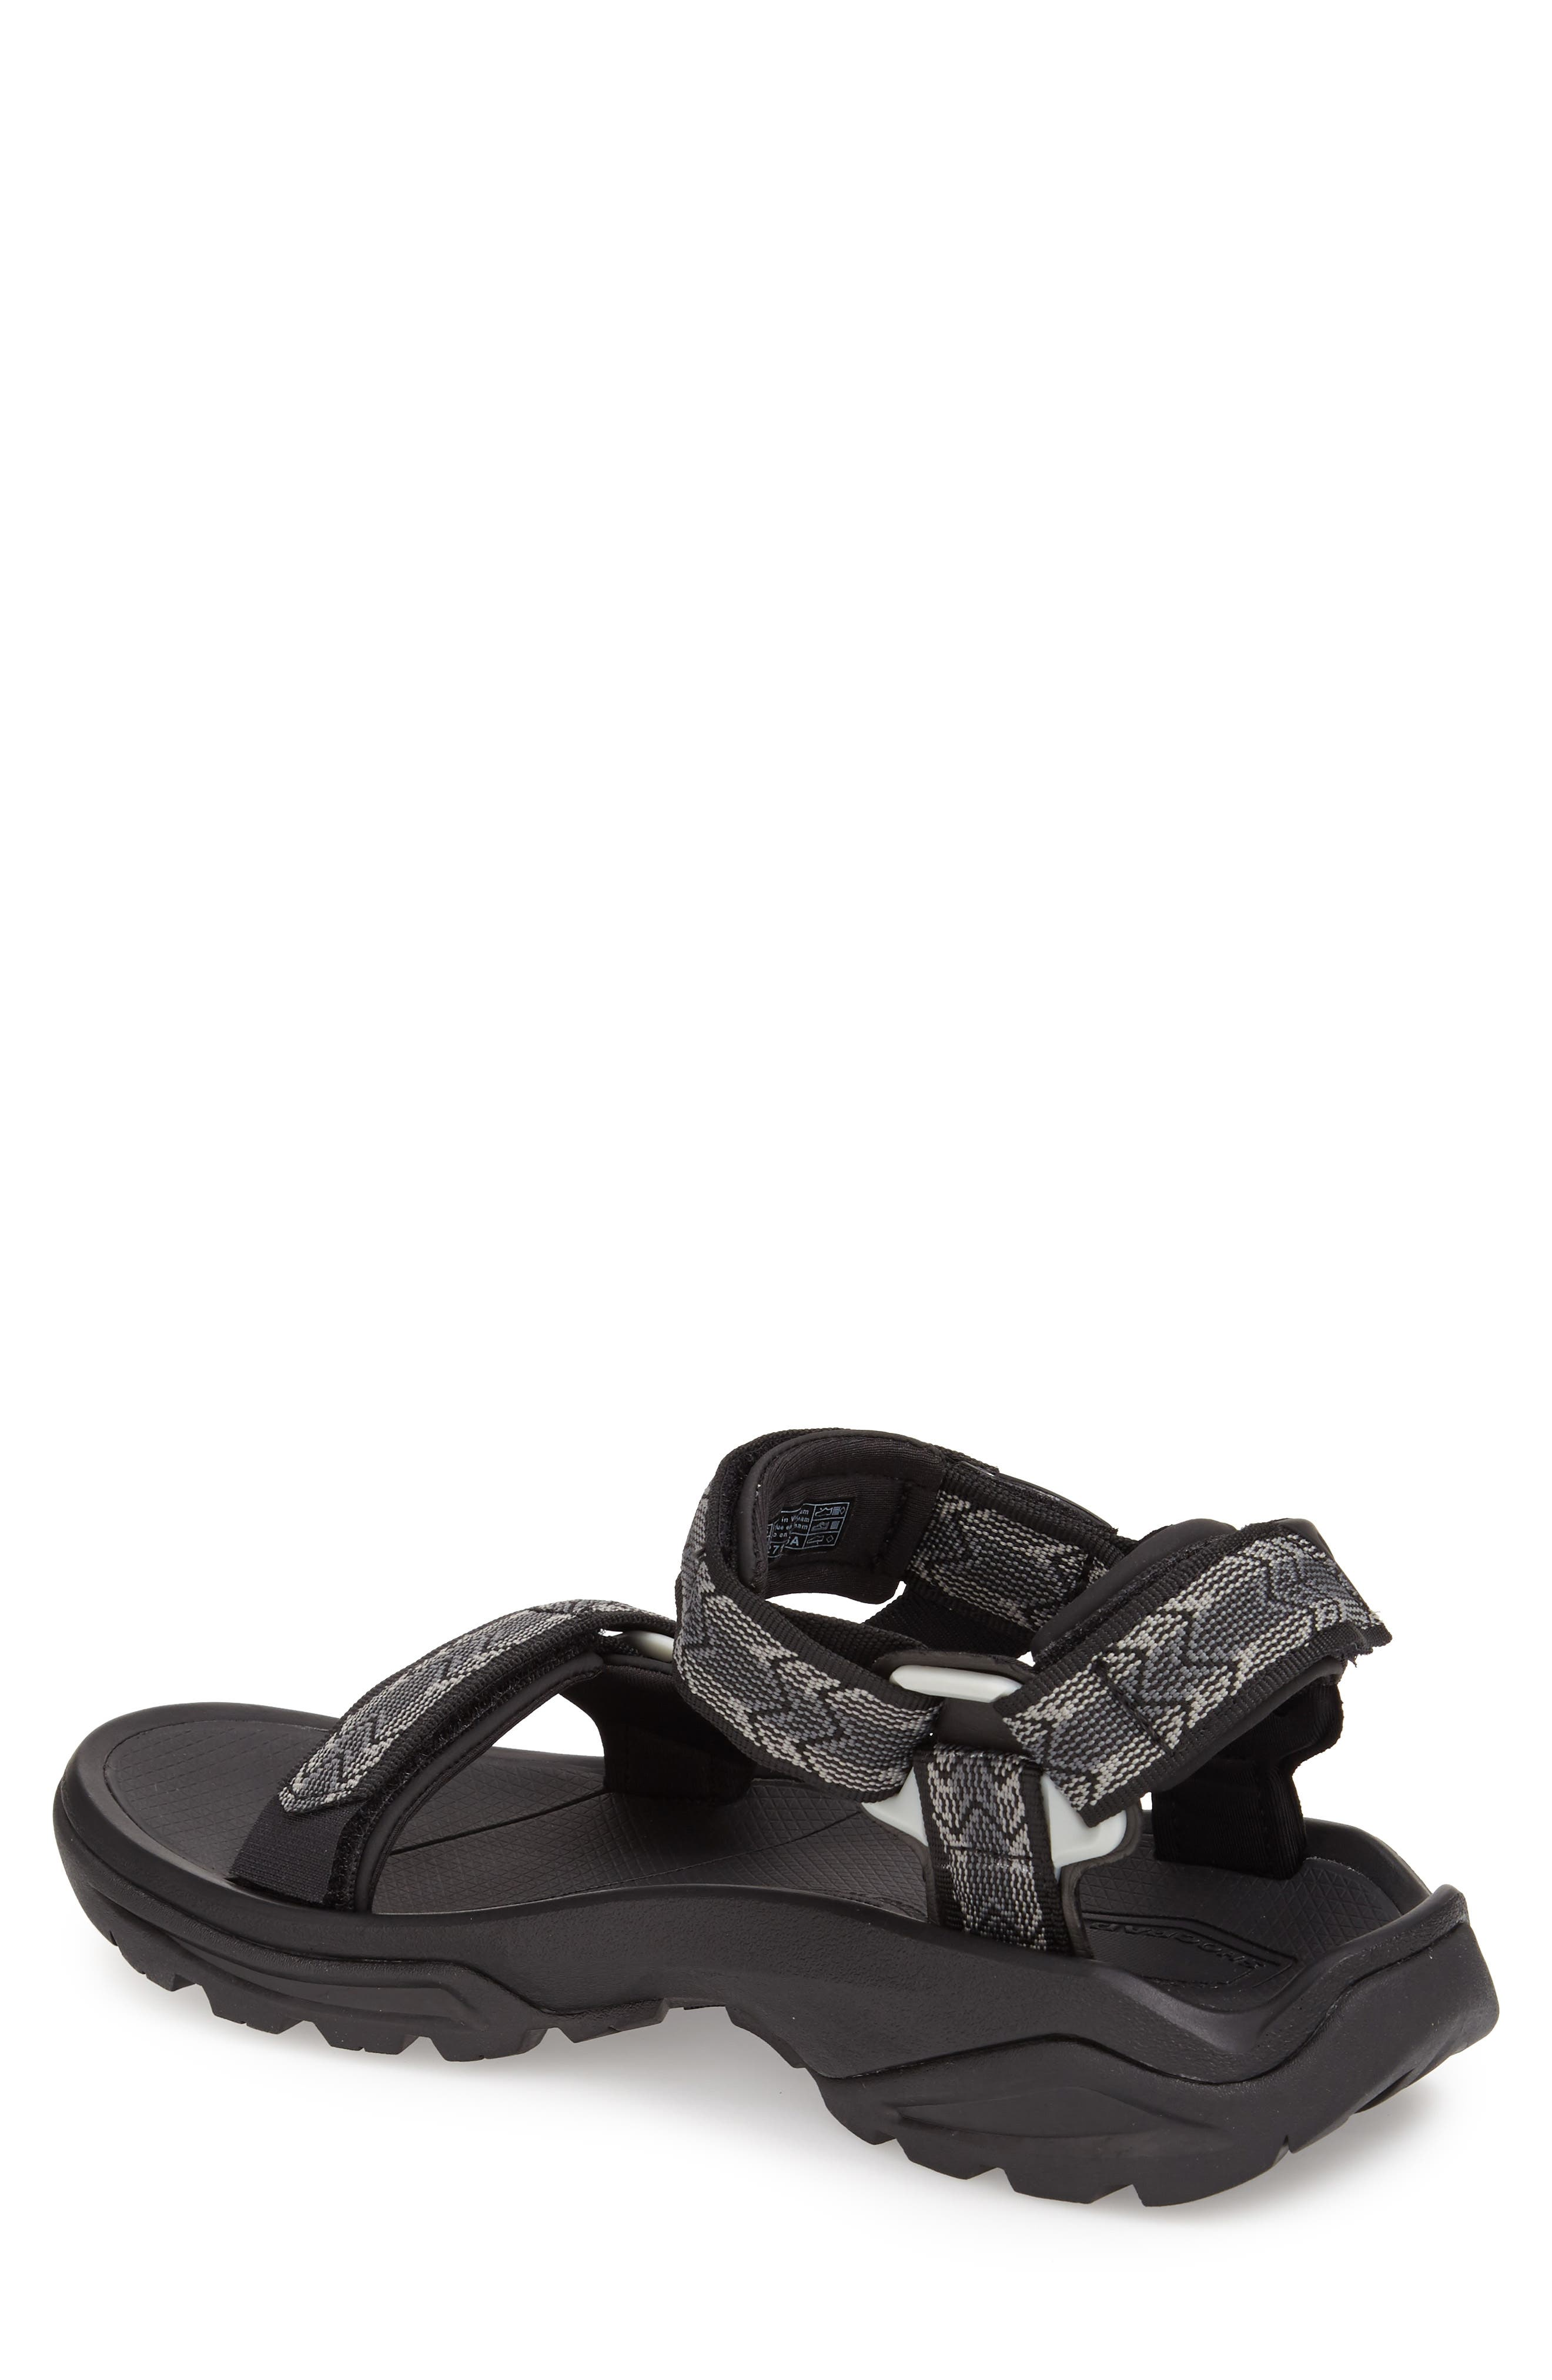 'Terra Fi 4' Sandal,                             Alternate thumbnail 5, color,                             CROSS TERRA BLACK